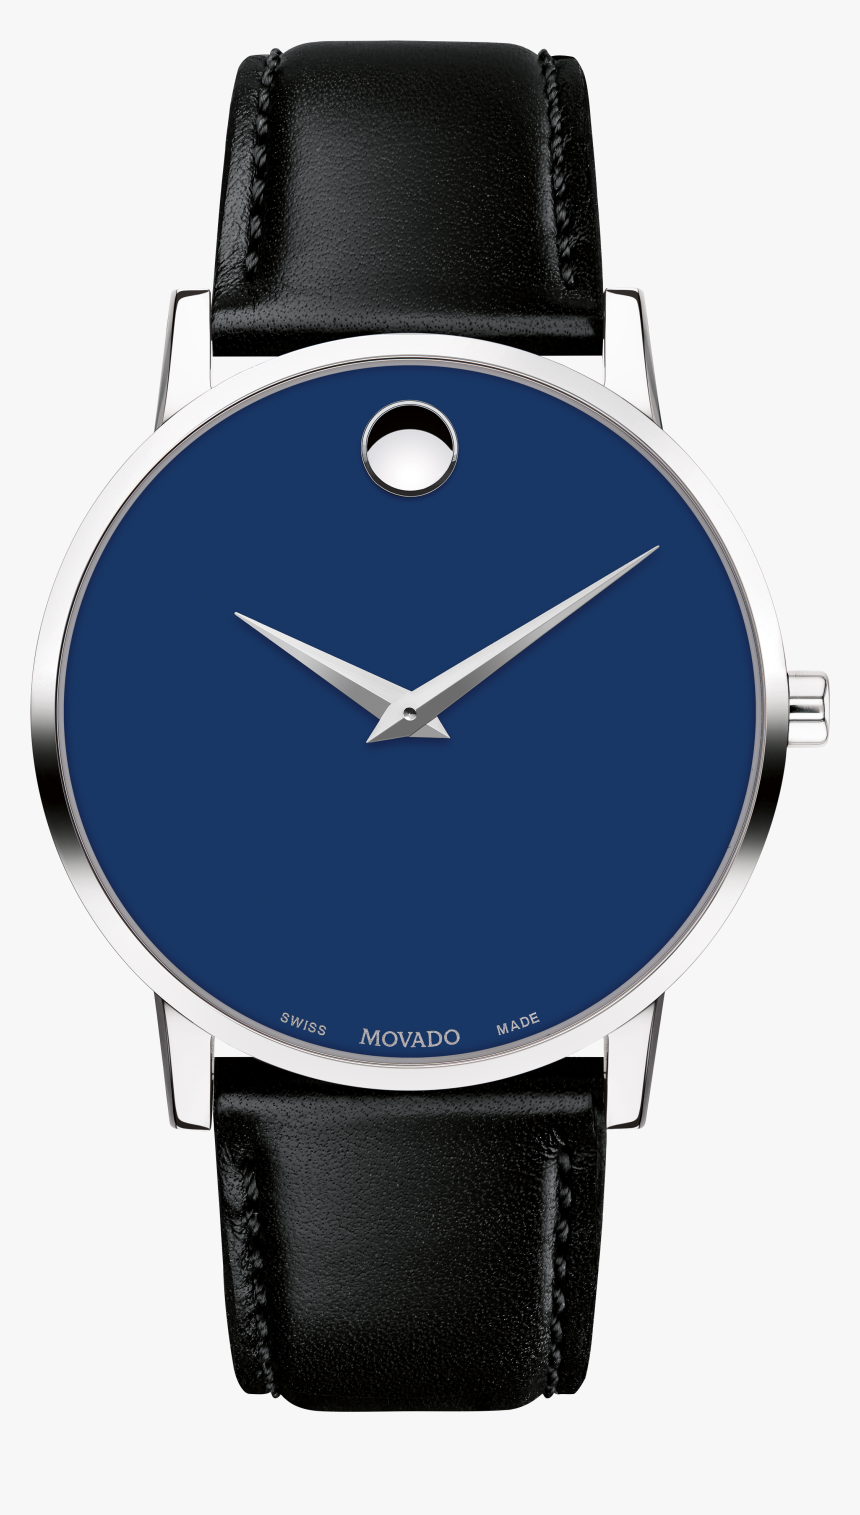 Museum Classic - Movado Men, HD Png Download, Free Download